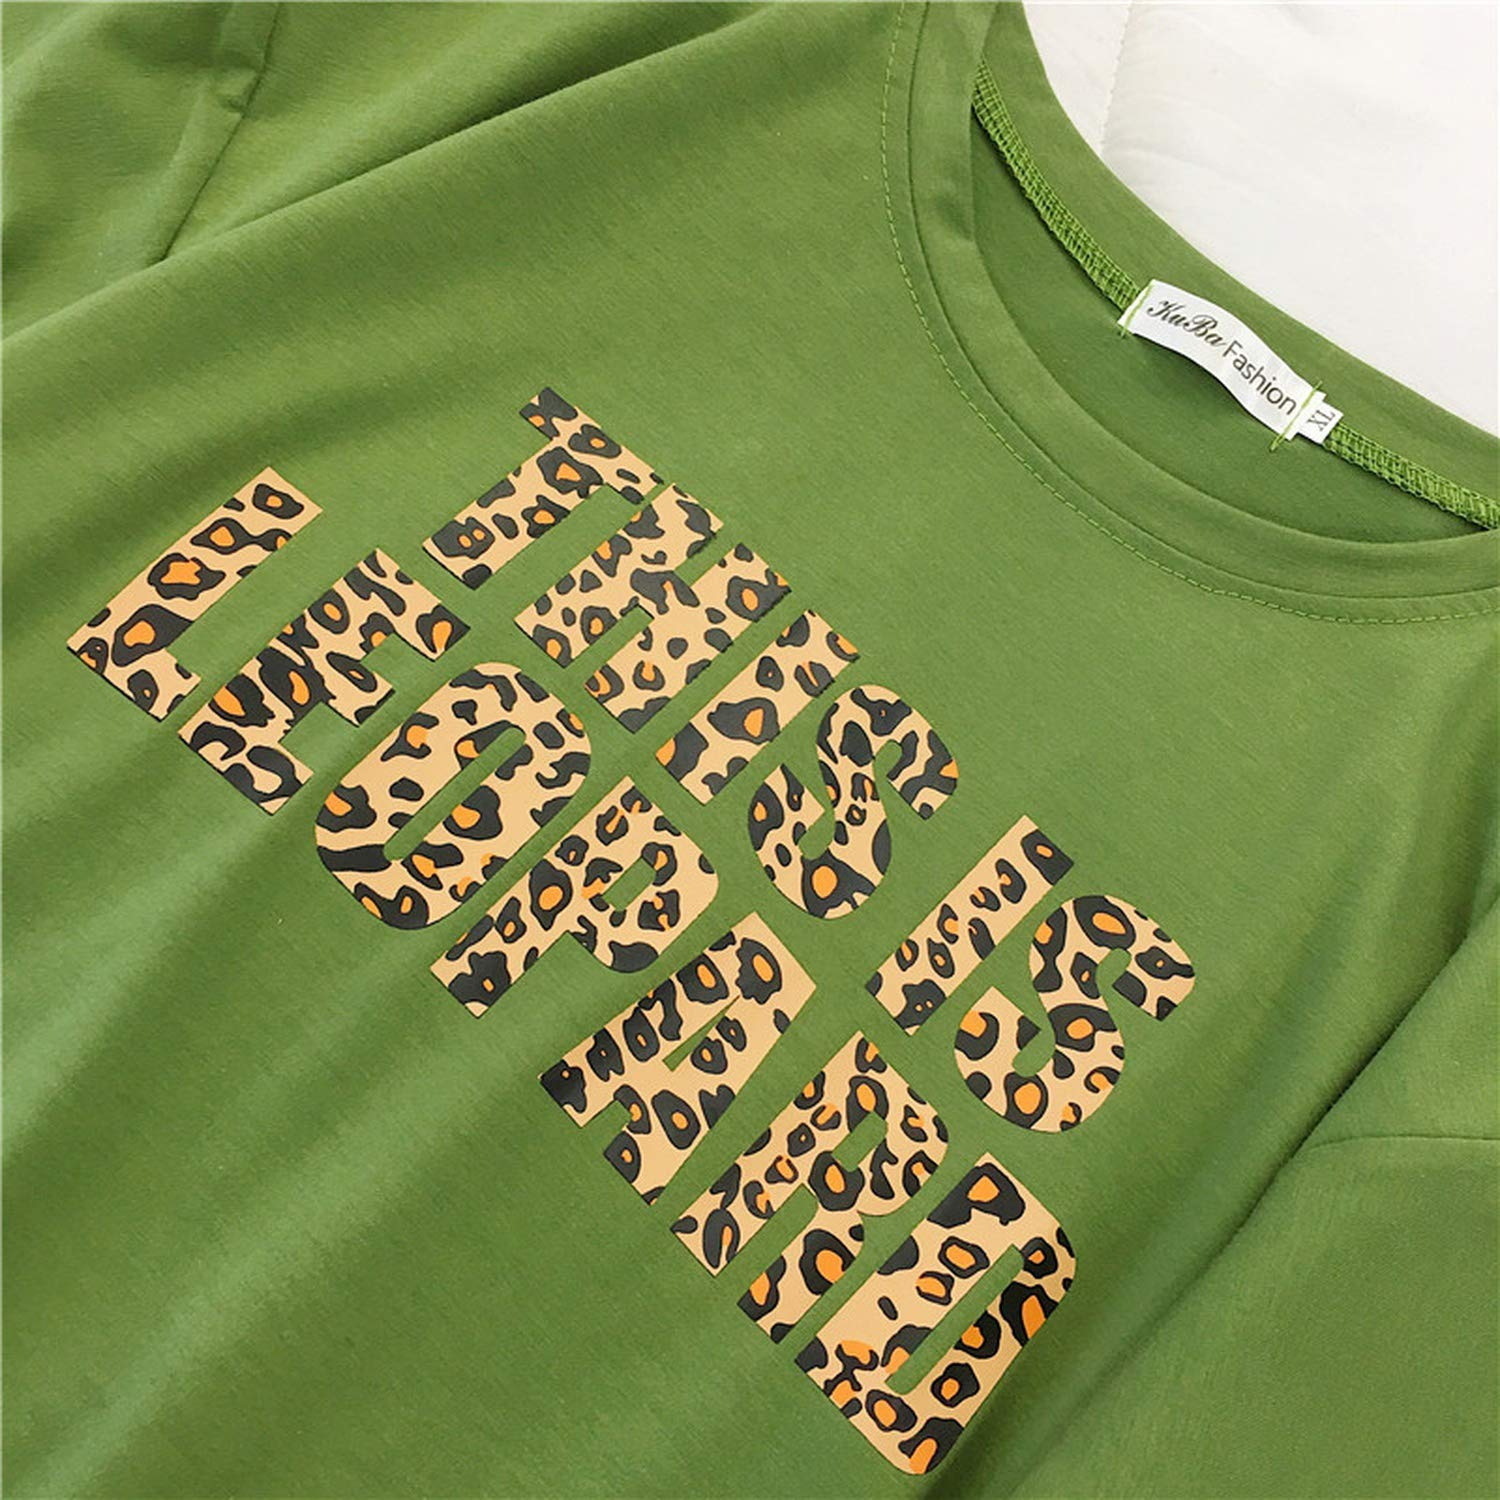 Best-u-store Leopard T Shirt Women Loose O-Neck Short Sleeve Letters Printed Tops Harajuku Chic Cotton Tshirts